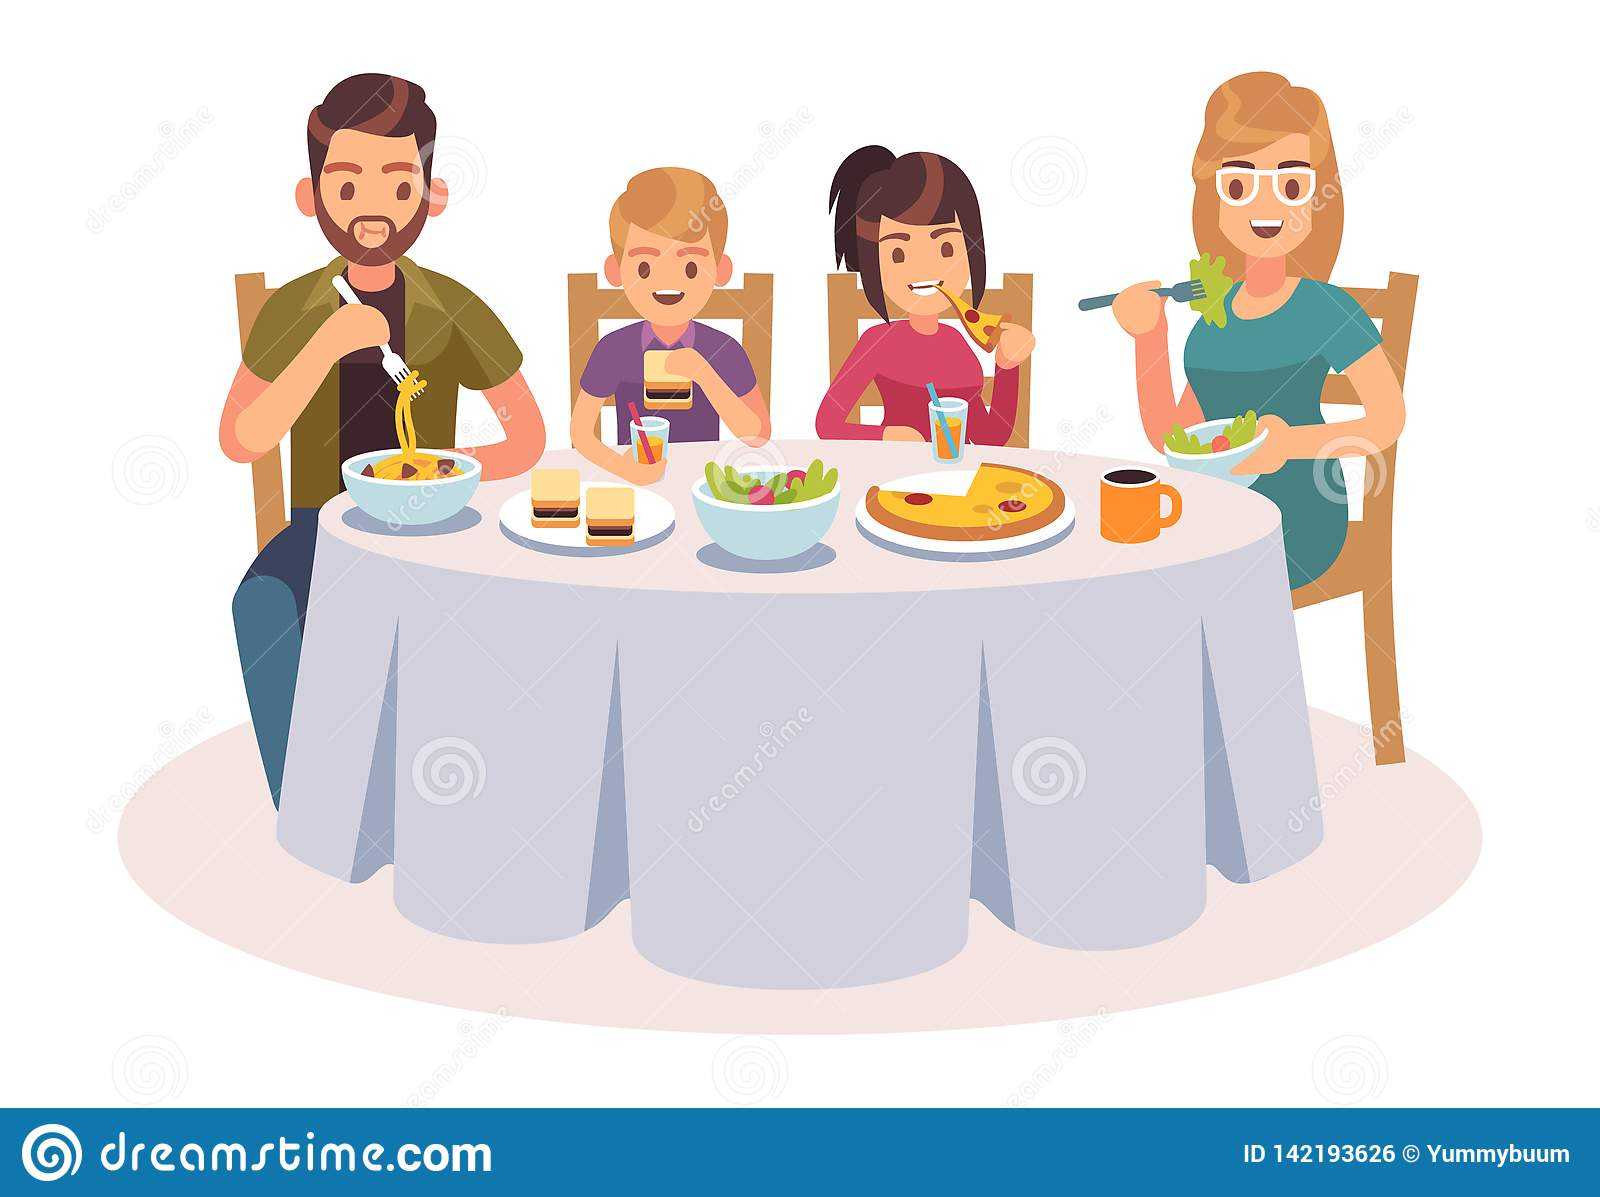 Vector Clipart - Kids eat together. children eating dinner cafe restaurant  happy child breakfast lunch fast food dining friends cartoon vector  concept. Vector Illustration gg112671057 - GoGraph